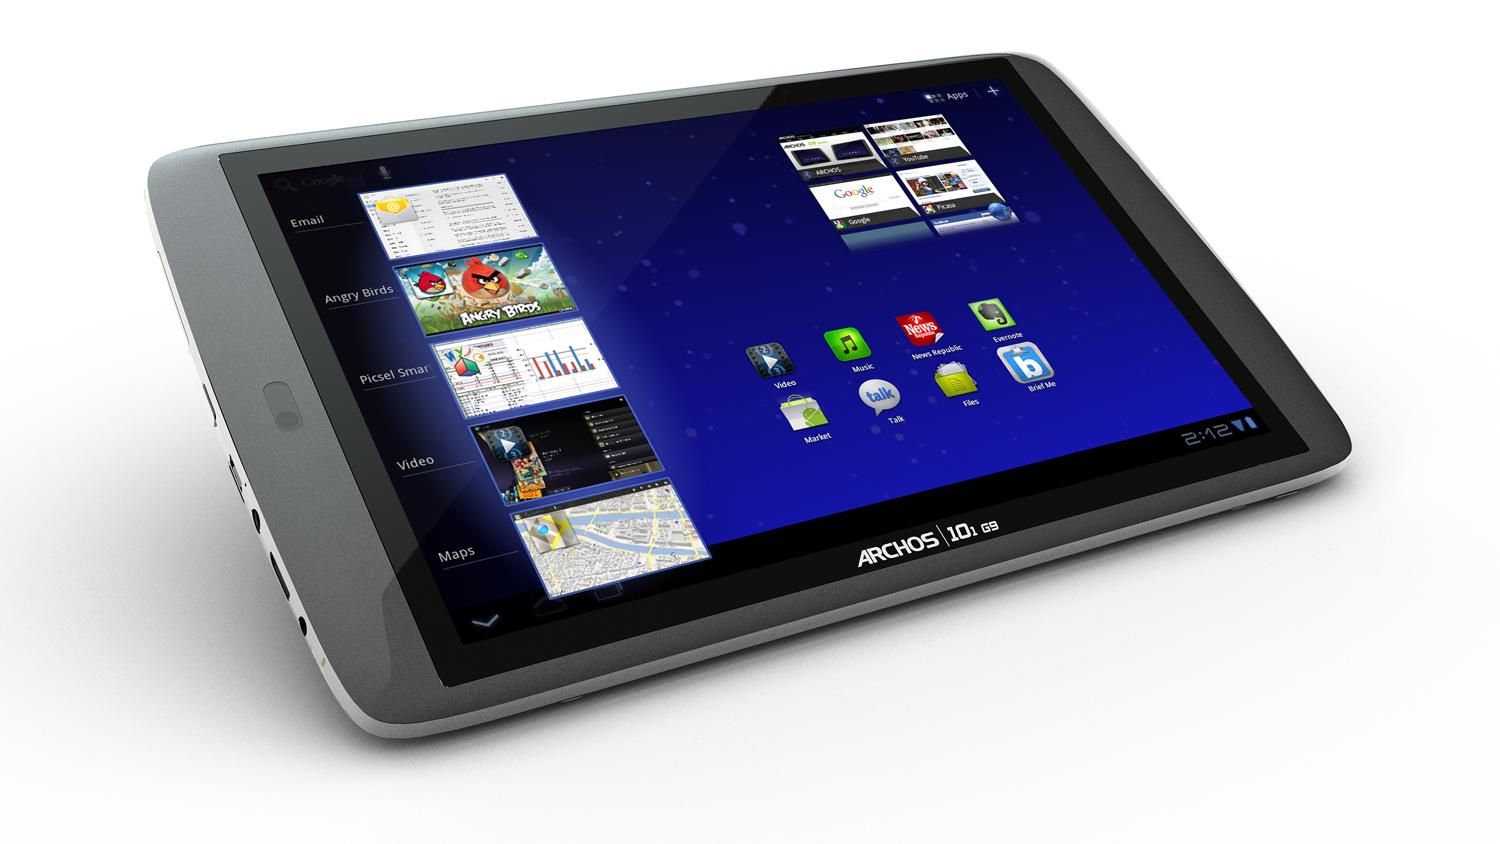 Thanks to its powerful dual-core ARM Cortex TM A9 processor, the ARCHOS 101 G9 browses the web up to 50% faster than standard Nvidia Tegra 2 TM tablet.